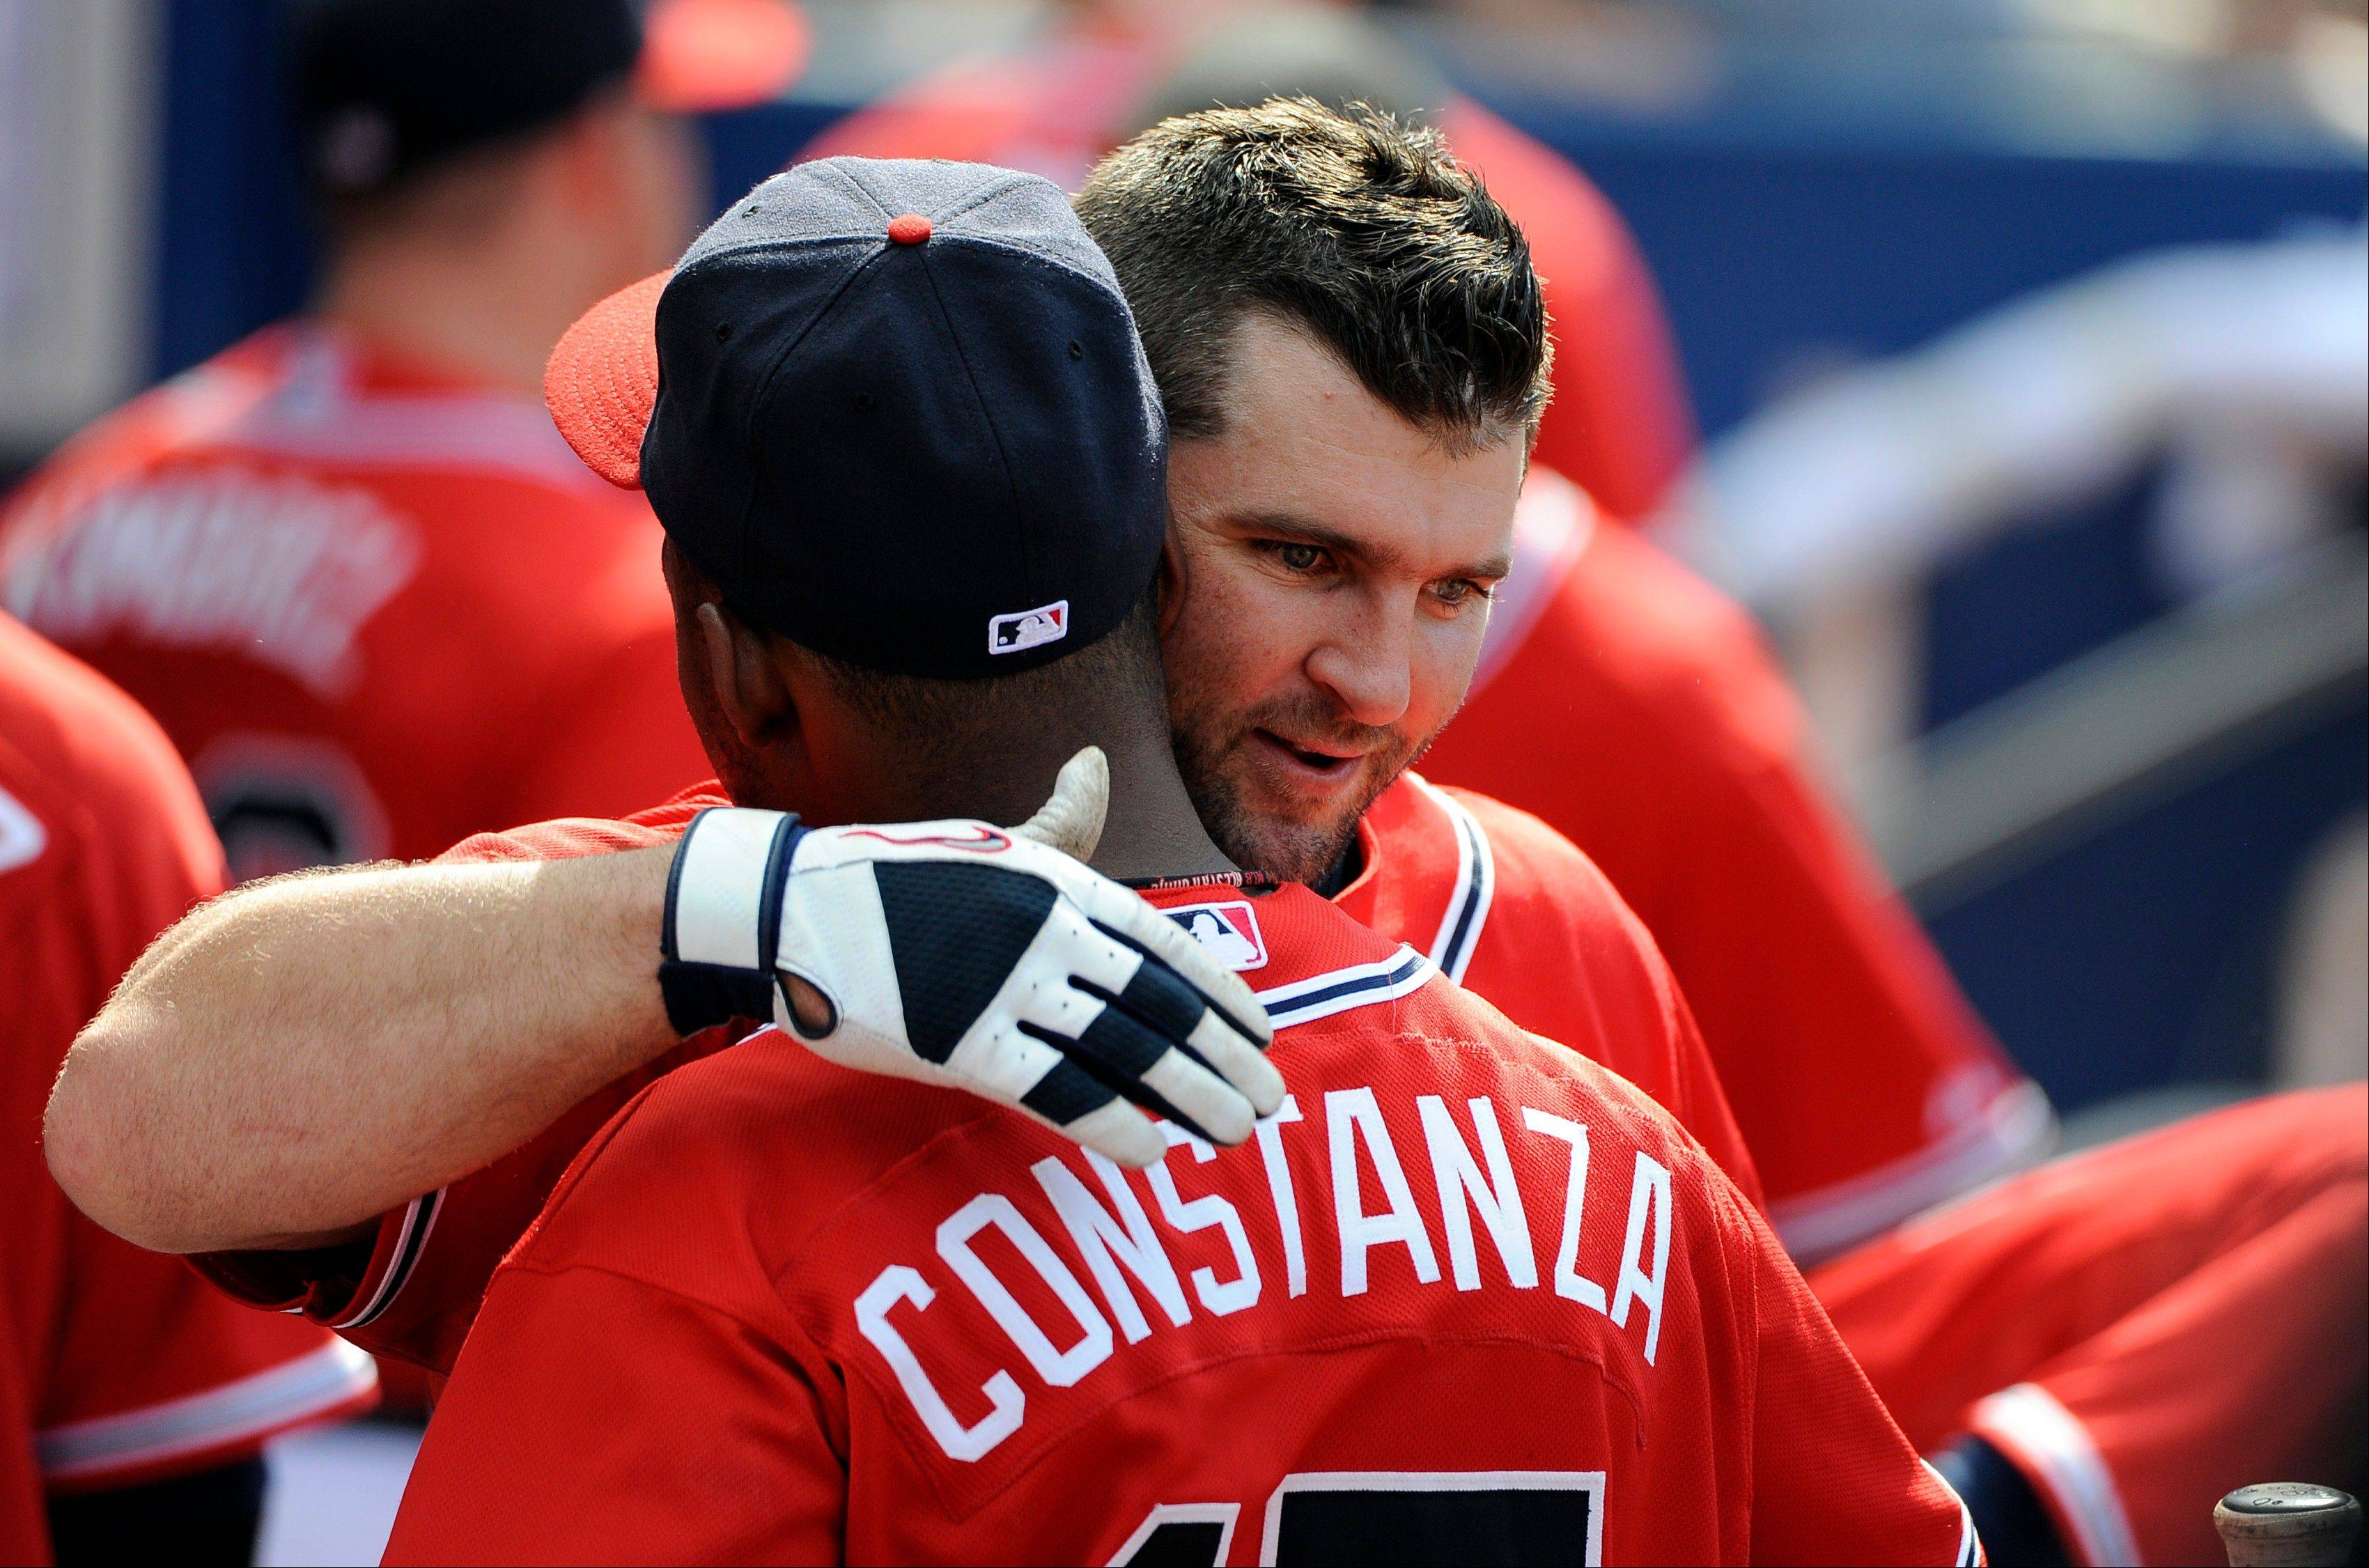 Atlanta�s Dan Uggla gets a hug from teammate Jose Costanza in the dugout Sunday after Uggla�s 33-game hitting streak came to an end. He went 0-for-3 in the Braves� loss to the Cubs.